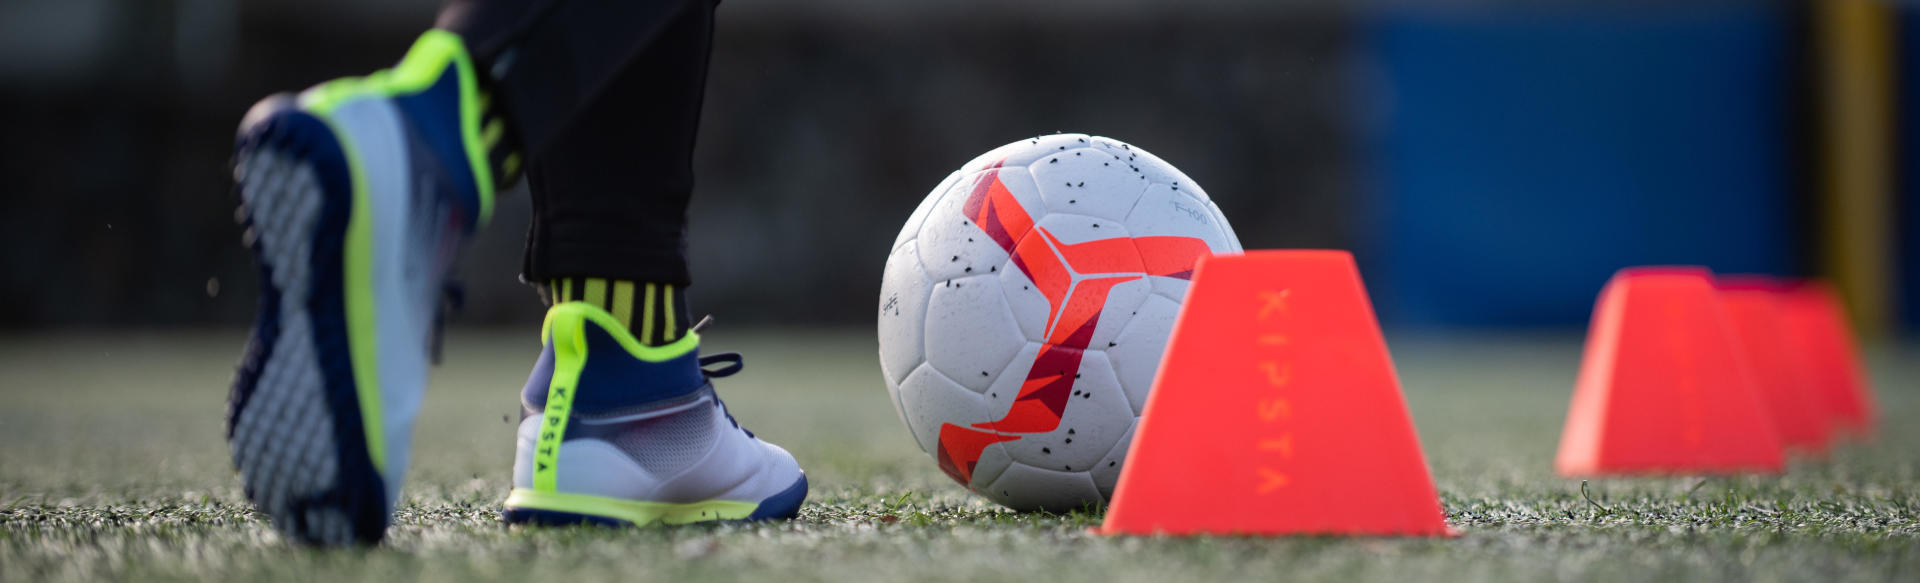 Comment-choisir-chaussures-football